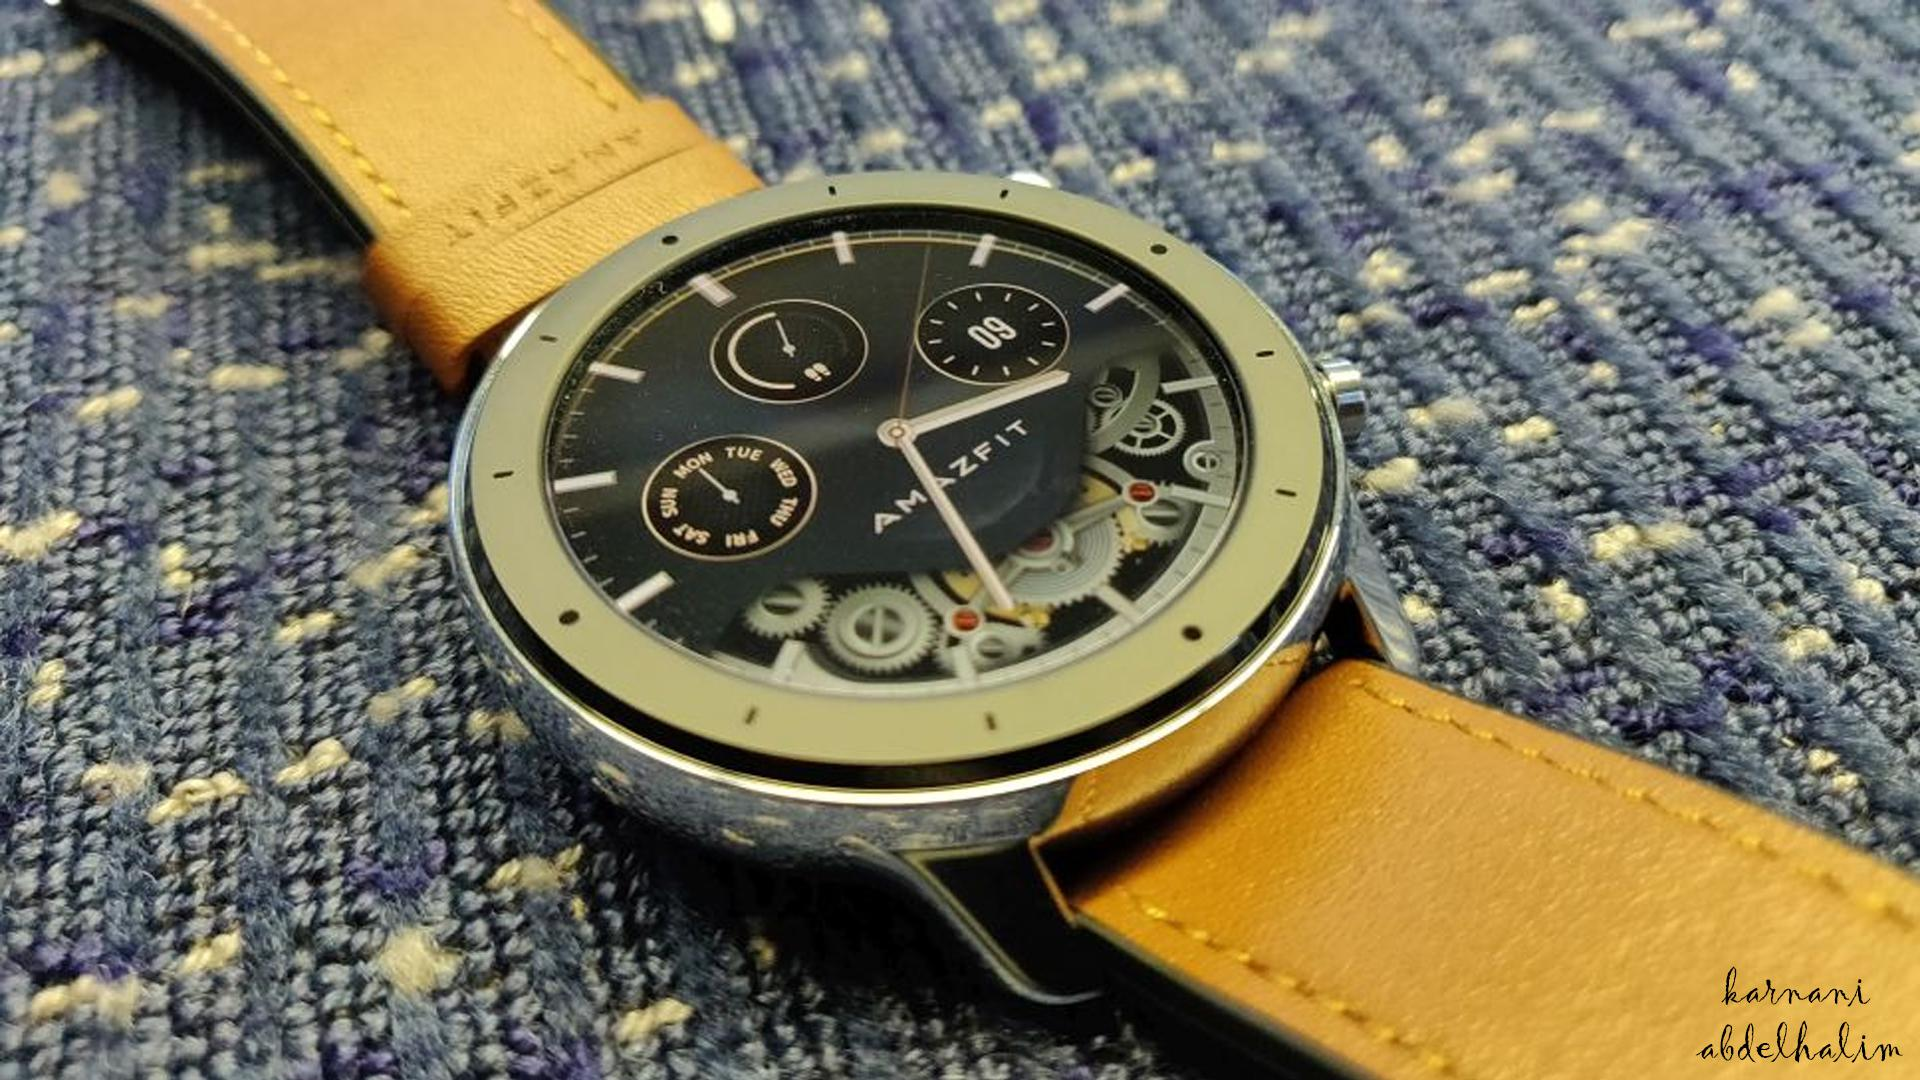 The King of the watches Amazfit GTR Lite 47mm